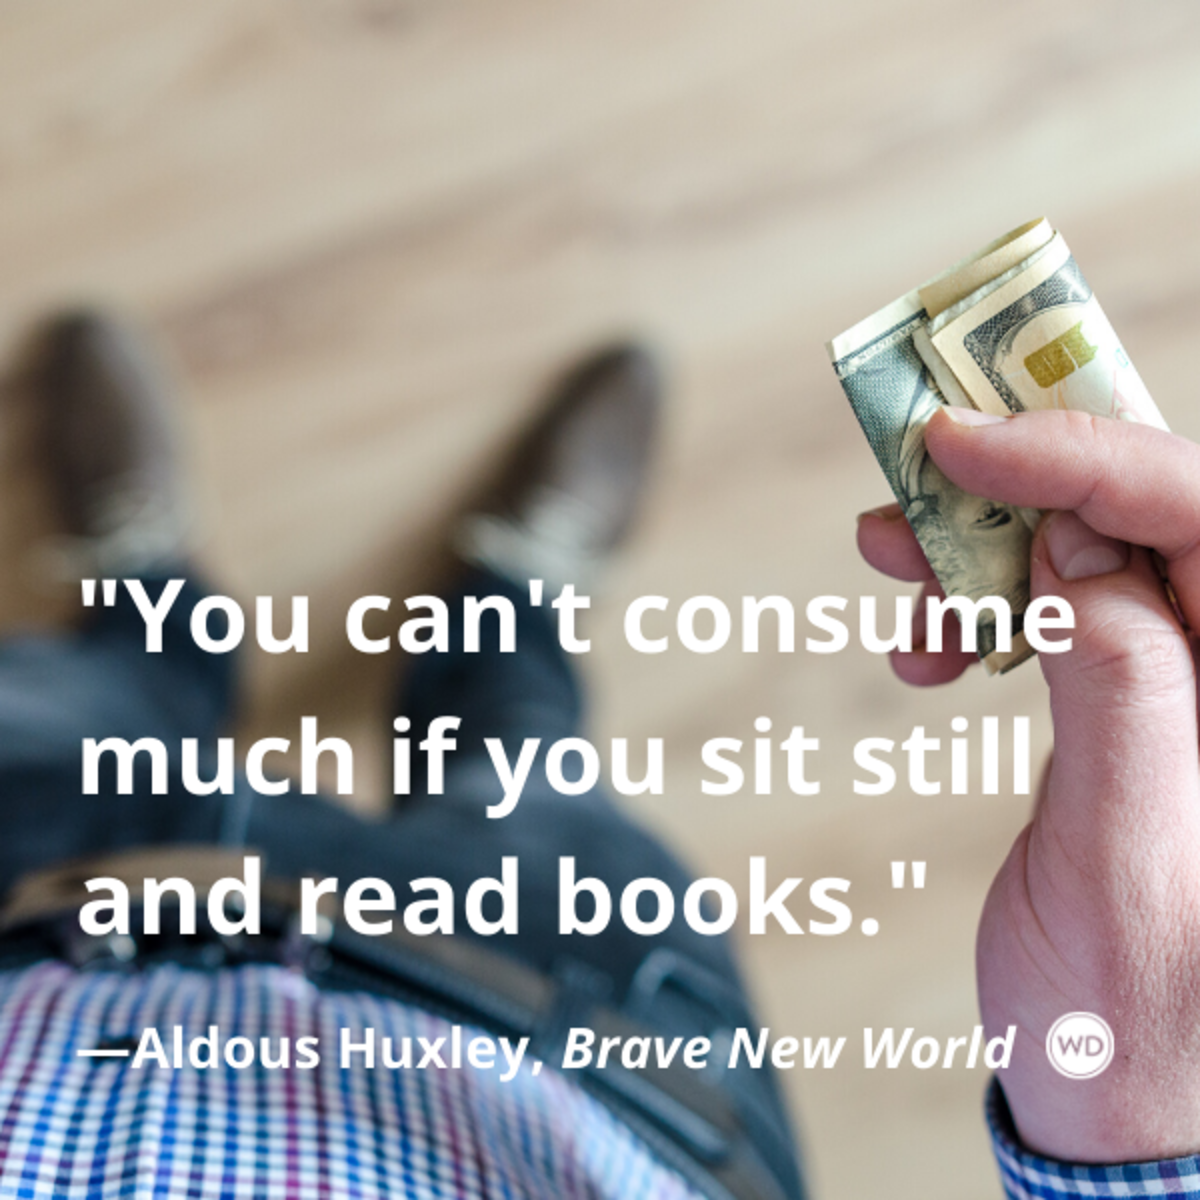 aldous_huxley_brave_new_world_quotes_you_cant_consume_much_if_you_sit_still_and_read_books